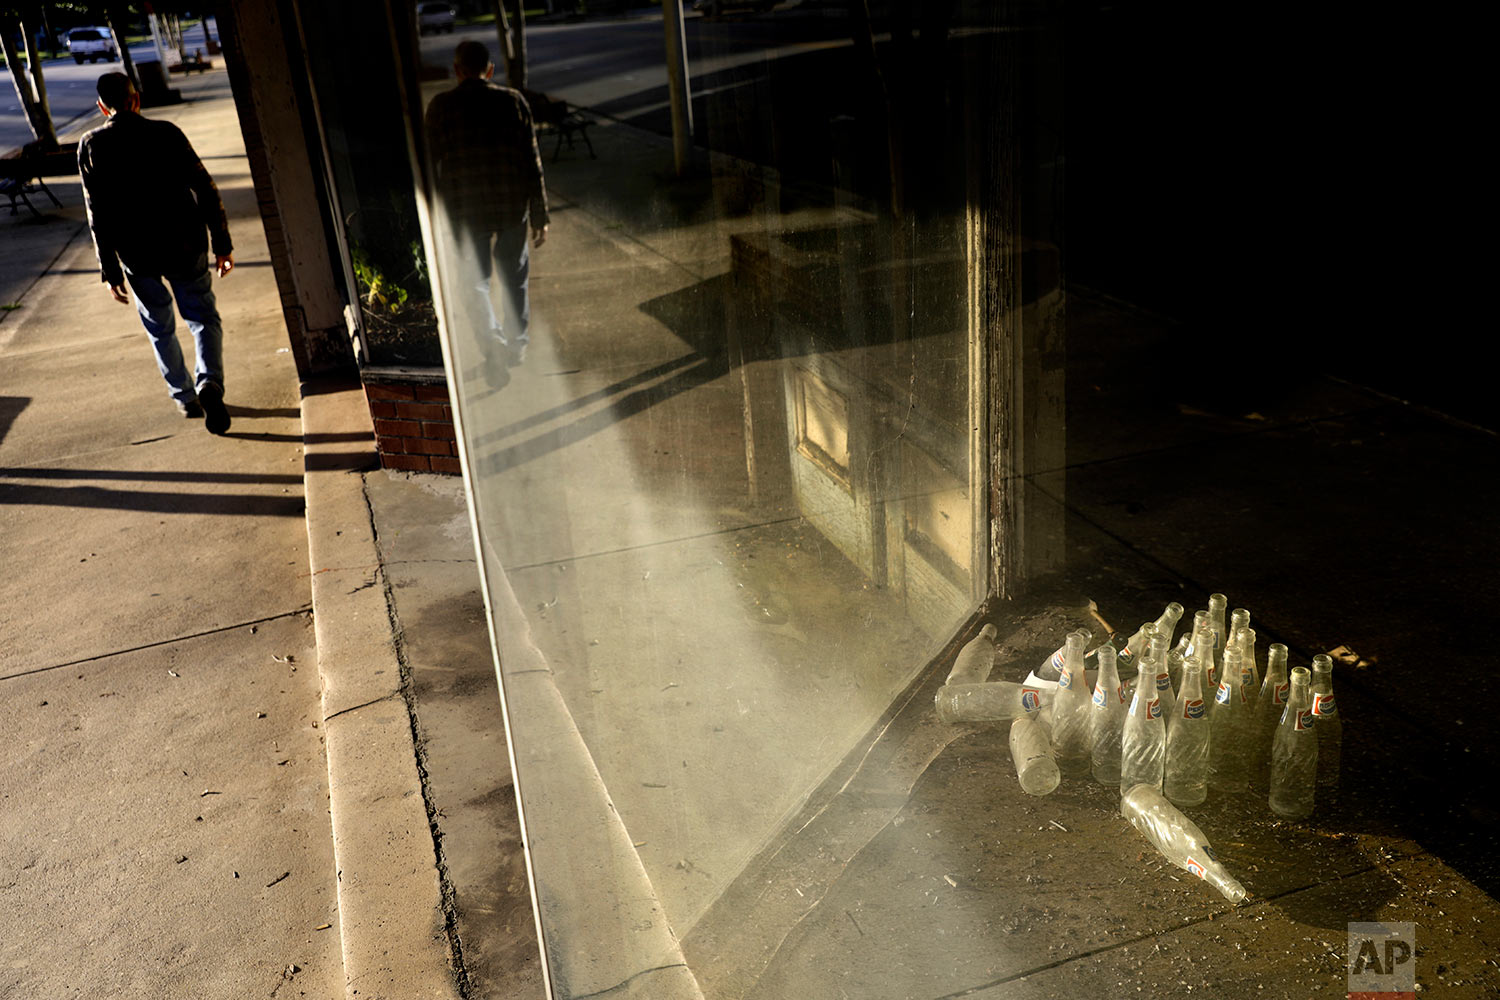 Old soda bottles sit in one of the many vacant storefront windows along West Main Street in Rowland, N.C., Wednesday, Oct. 25, 2017. Rowland, a town in Robeson County, used to make Converse sneakers, T-shirts and pantyhose but the textile economy broke down decades ago and factories moved overseas. (AP Photo/David Goldman)